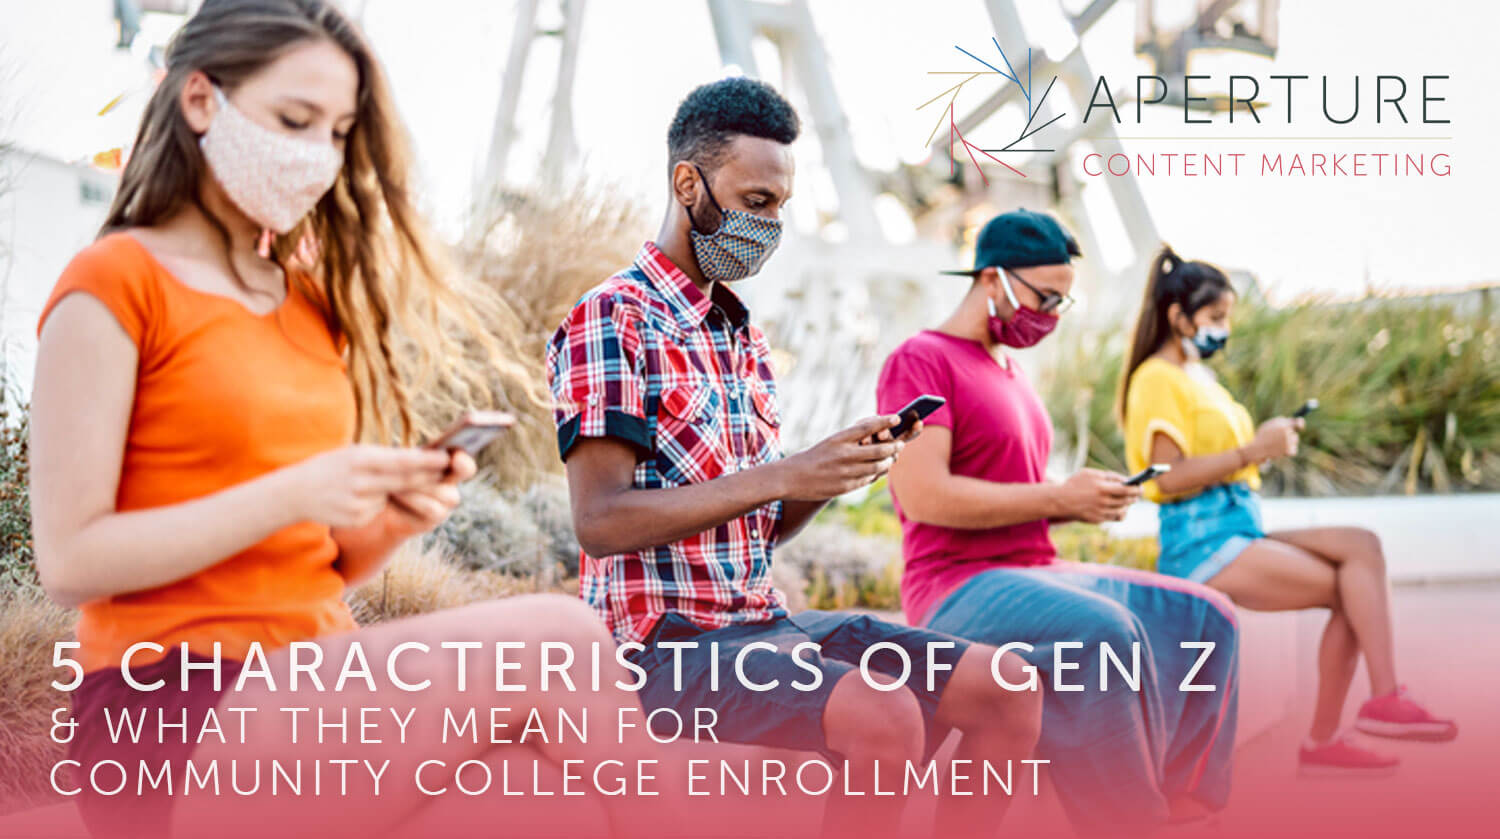 5 Characteristics of Gen Z & What they mean for Community College Enrollment